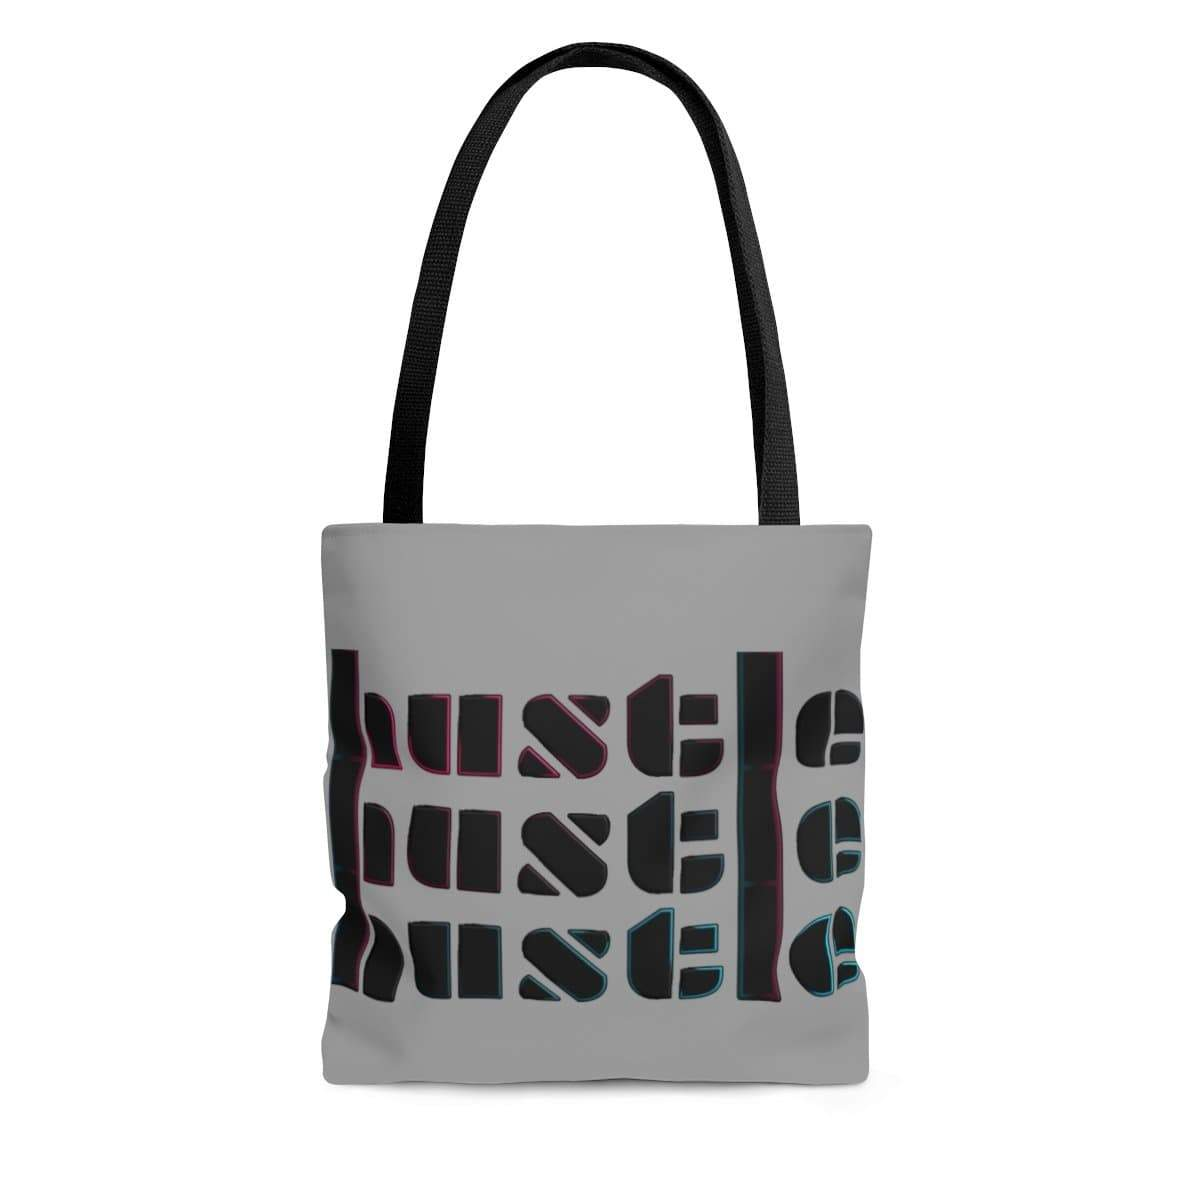 Plumskum Bags Small 3 Times the Hustle Tote Bag